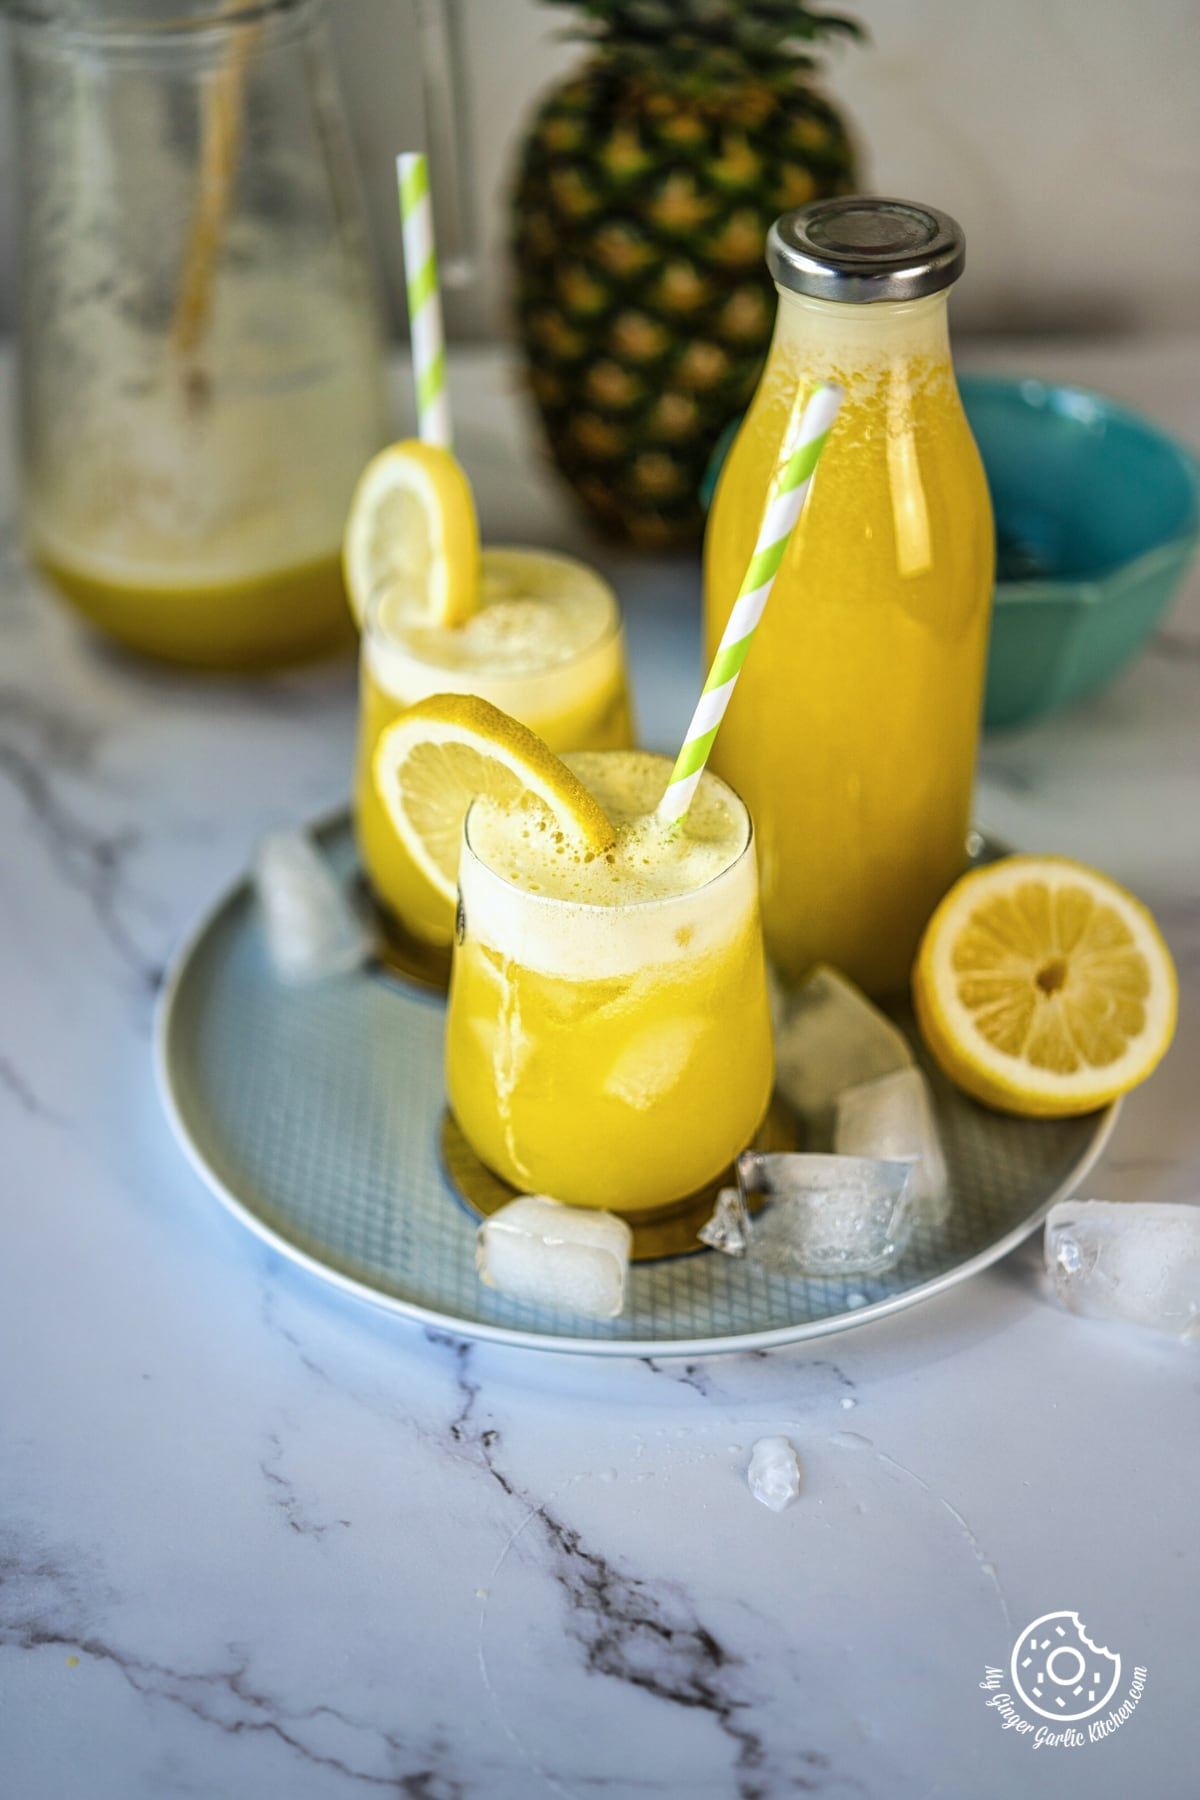 two pineapple juice glasses in a plate with half lemon and ice cubes